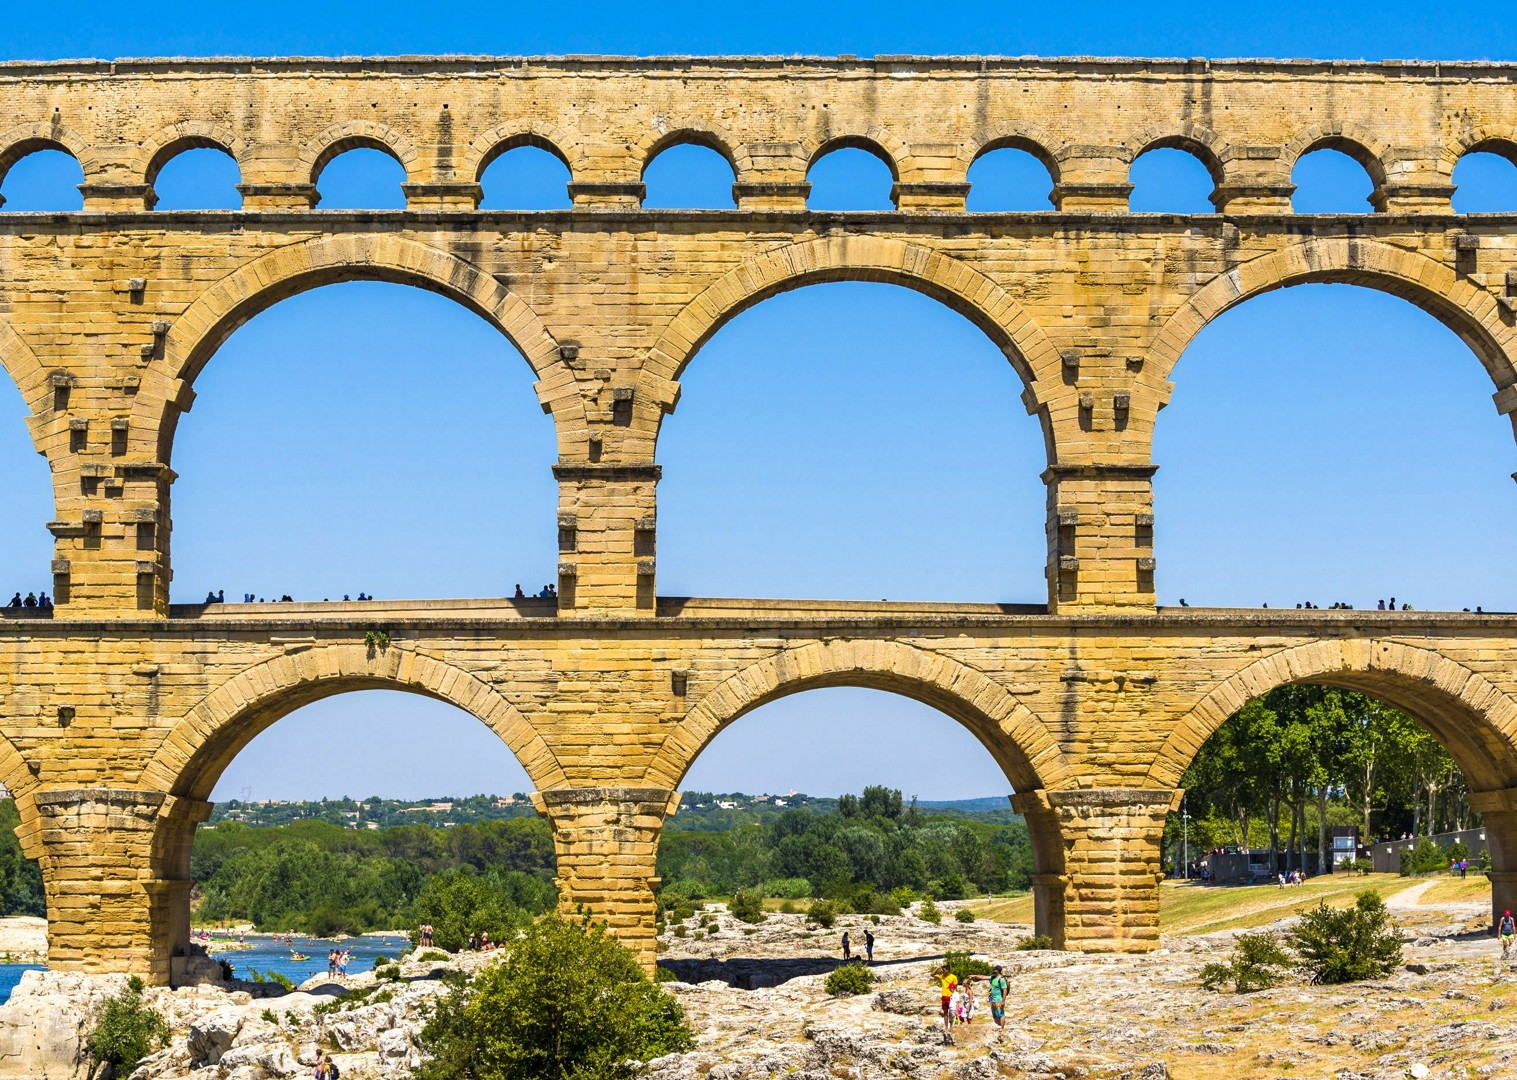 vers-pont-du-gard-france-cycling-holiday-saddle-skedaddle-cultural-fun.jpg - France - Provence - Avignon to Aigues-Mortes - Bike and Barge Holiday - Leisure Cycling